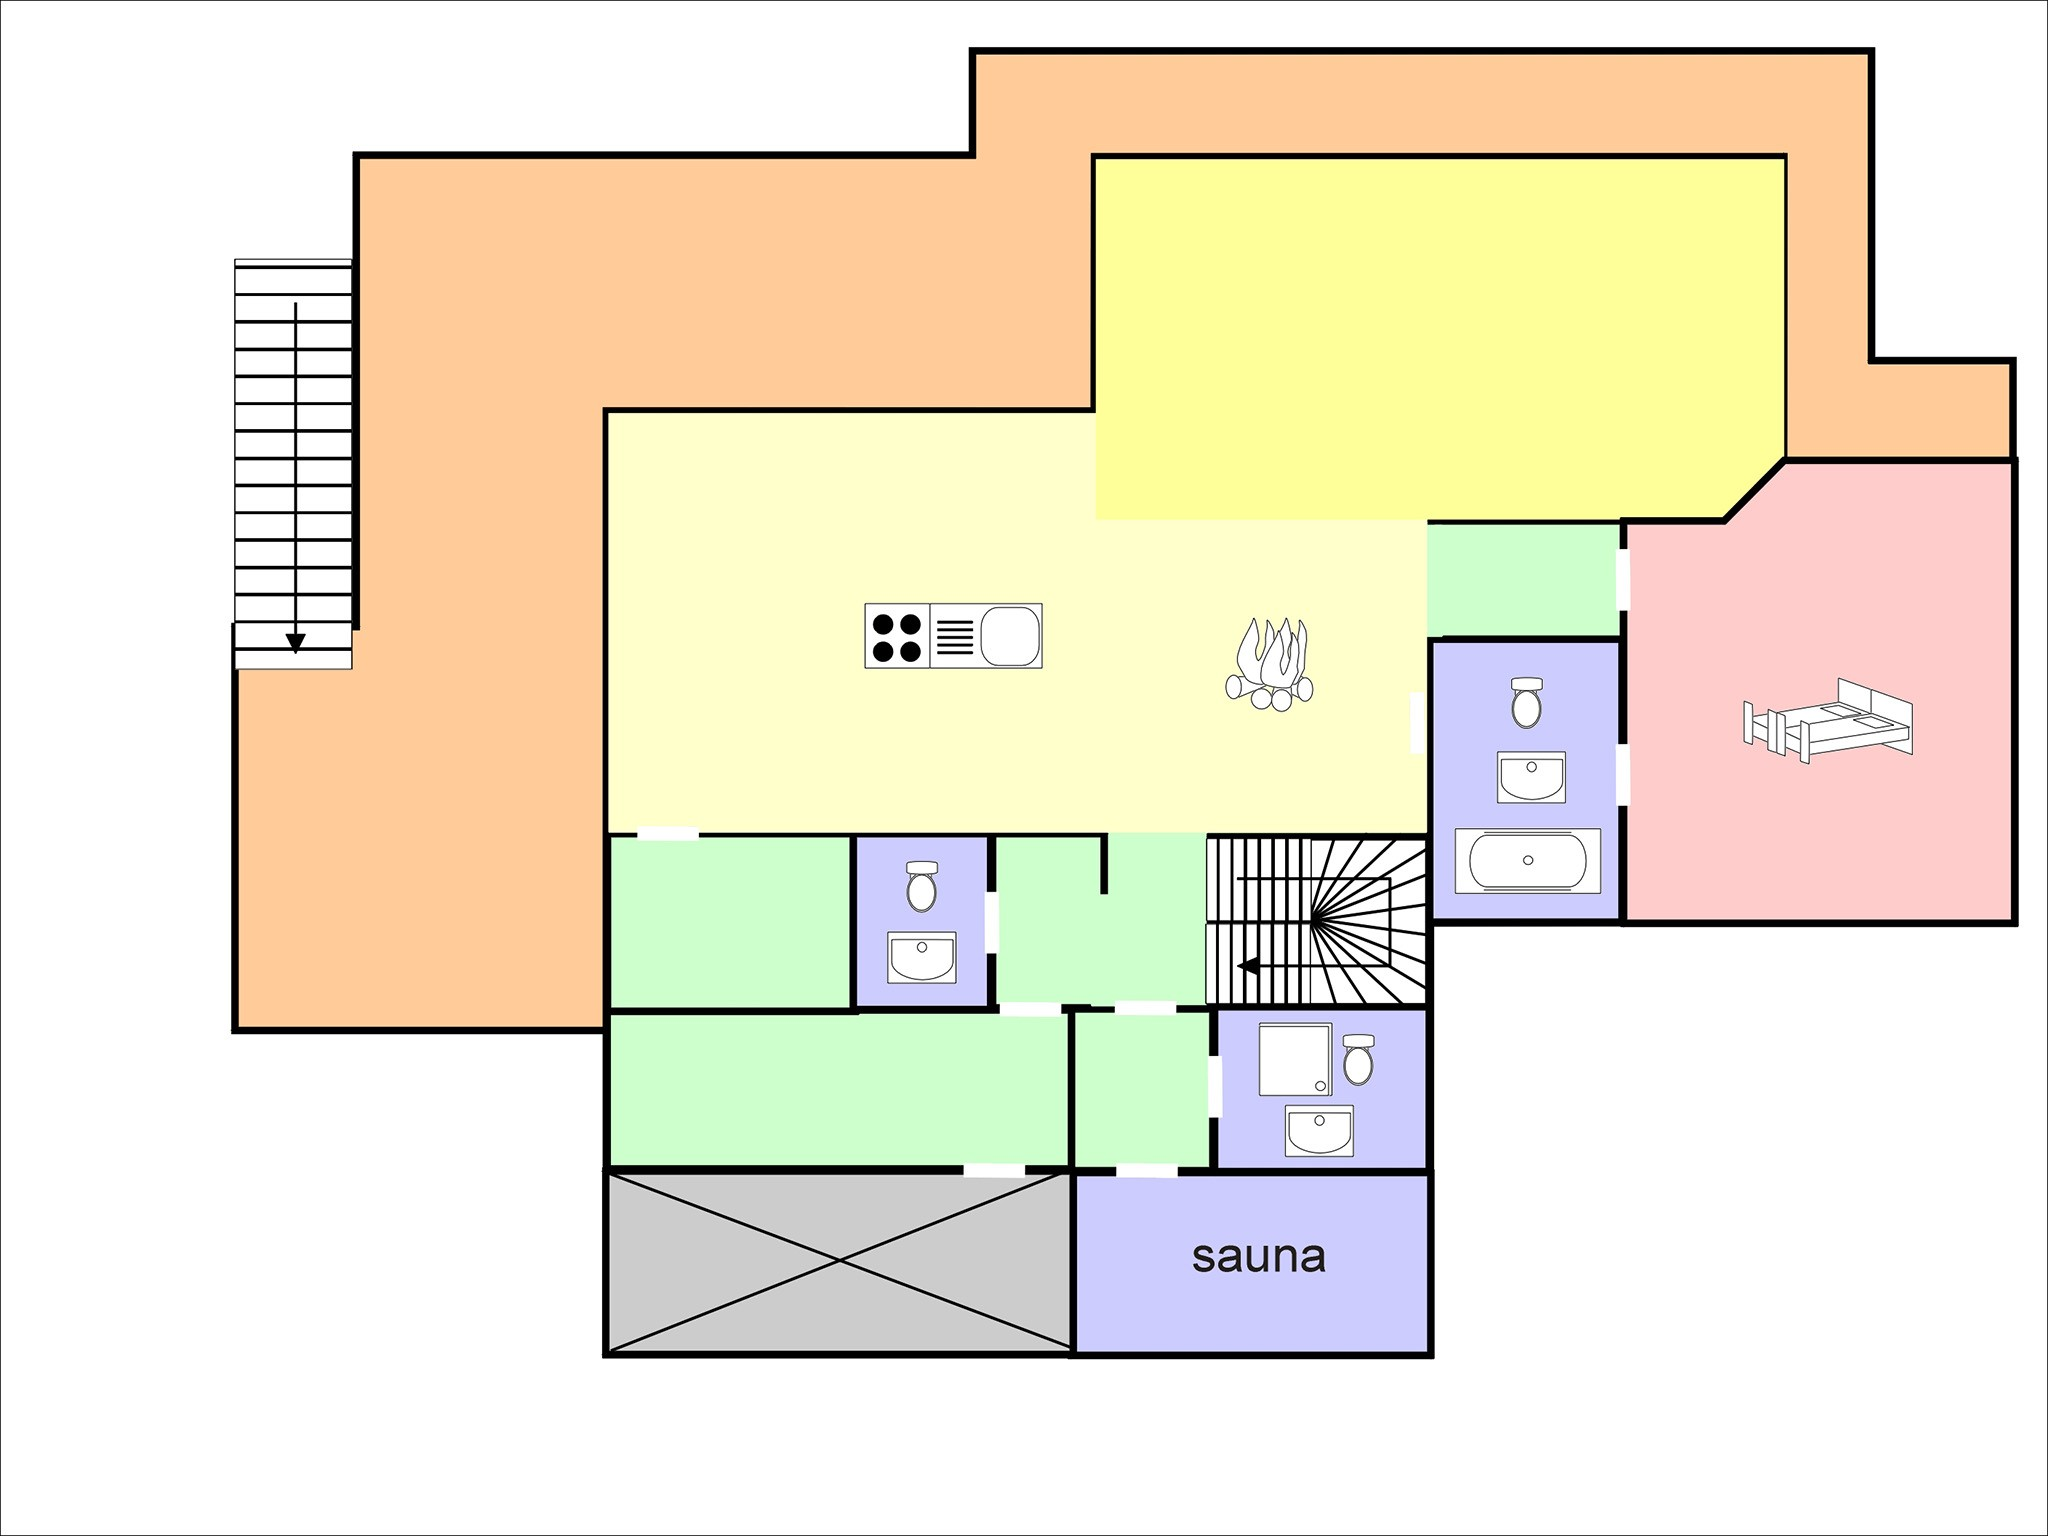 Chalet Flocon de Neige - floor plan - level 2